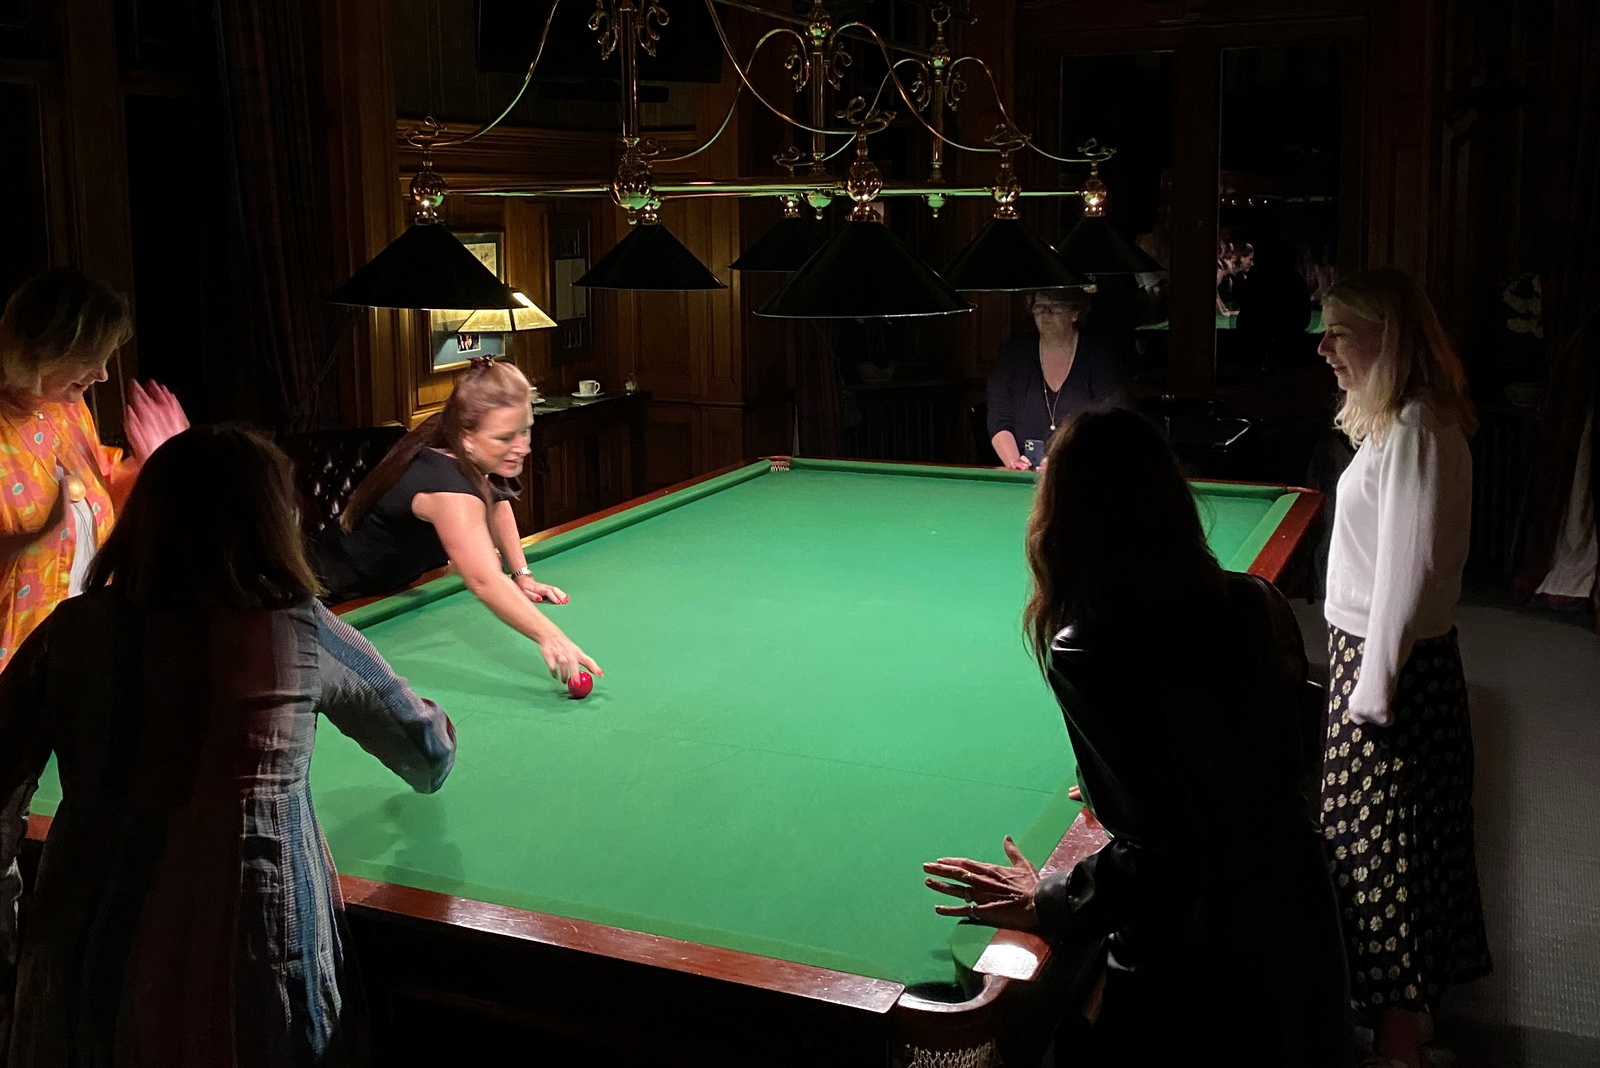 Playing billiards at Auchterarder House